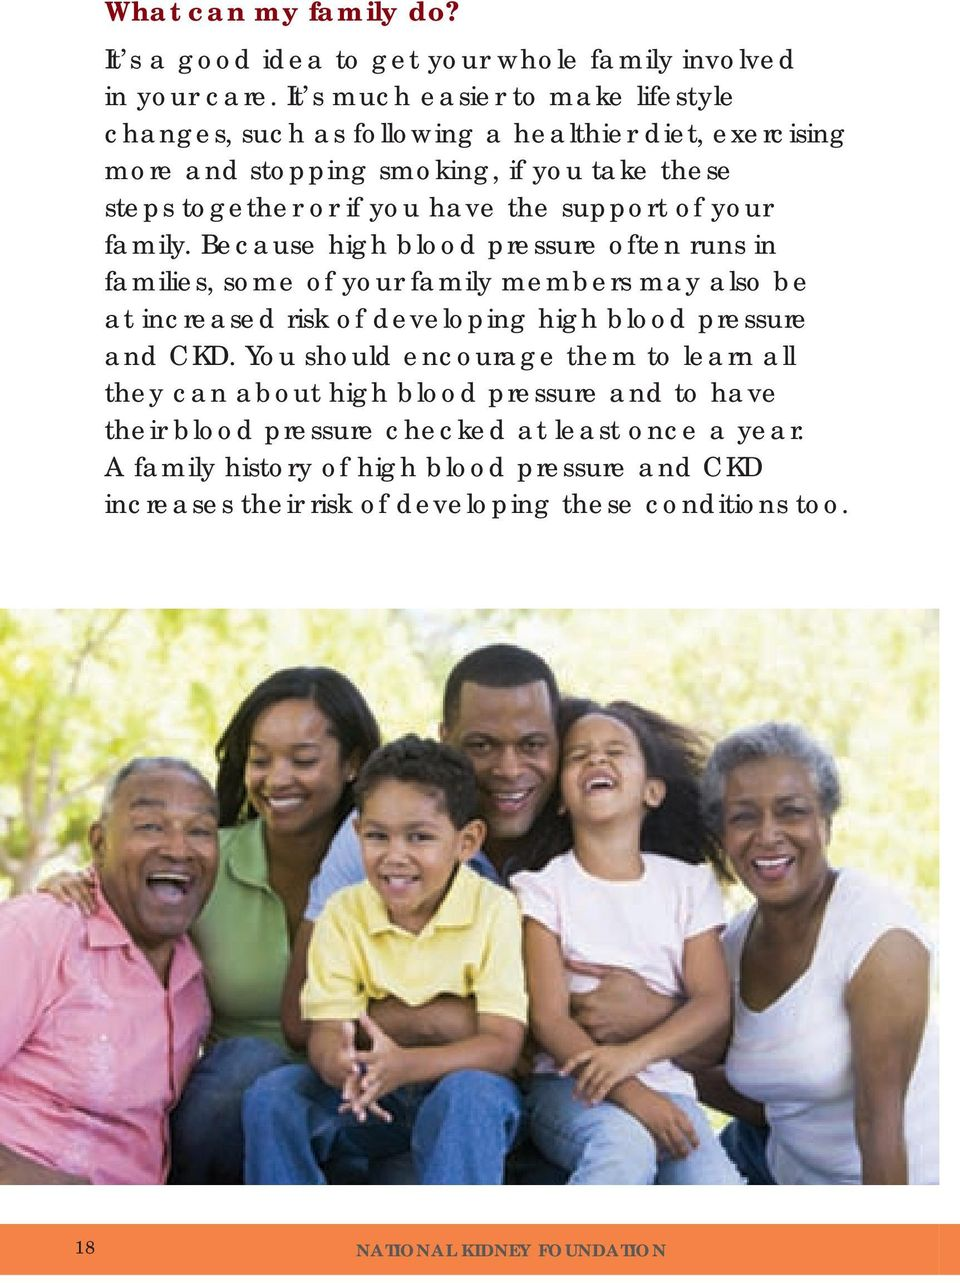 support of your family. Because high blood pressure often runs in families, some of your family members may also be at increased risk of developing high blood pressure and CKD.